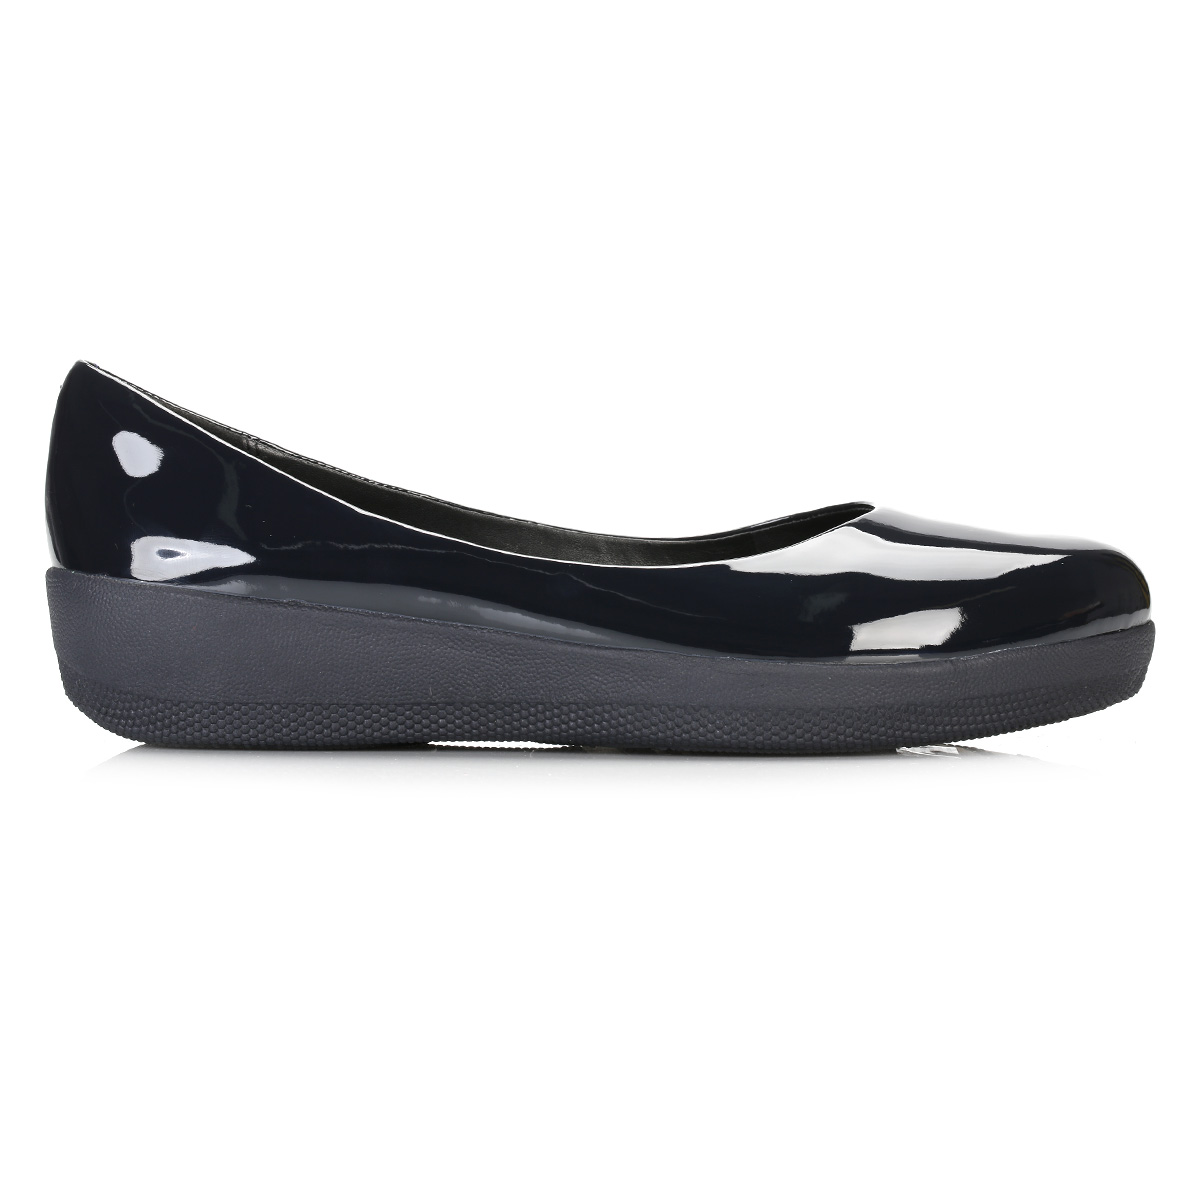 Shop the collection of Women's Flats by Aerosoles. Find women's high quality, comfortable, on-trend shoes at affordable prices.